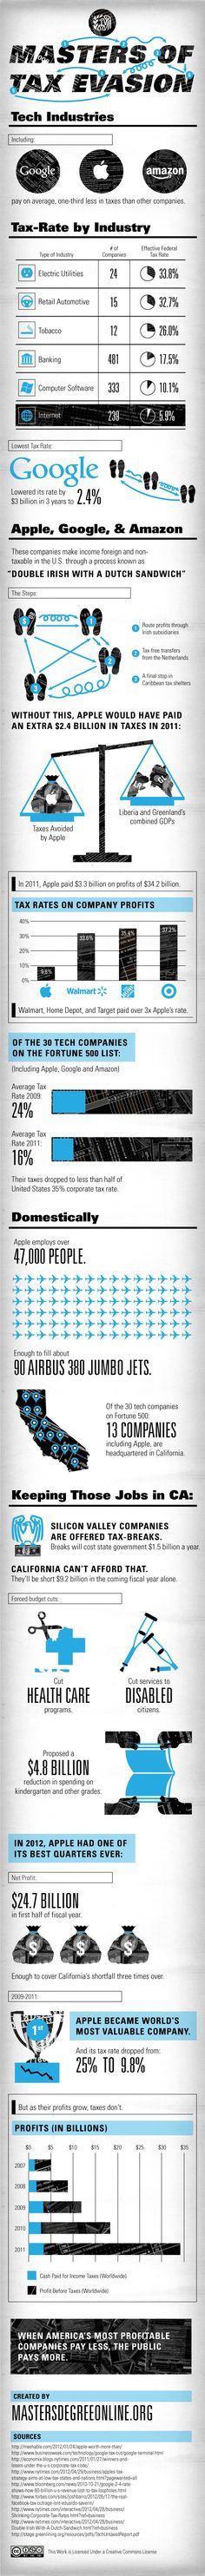 Infographic: Masters of Tax Evasion #taxpro #accounting www.OneMorePress.com